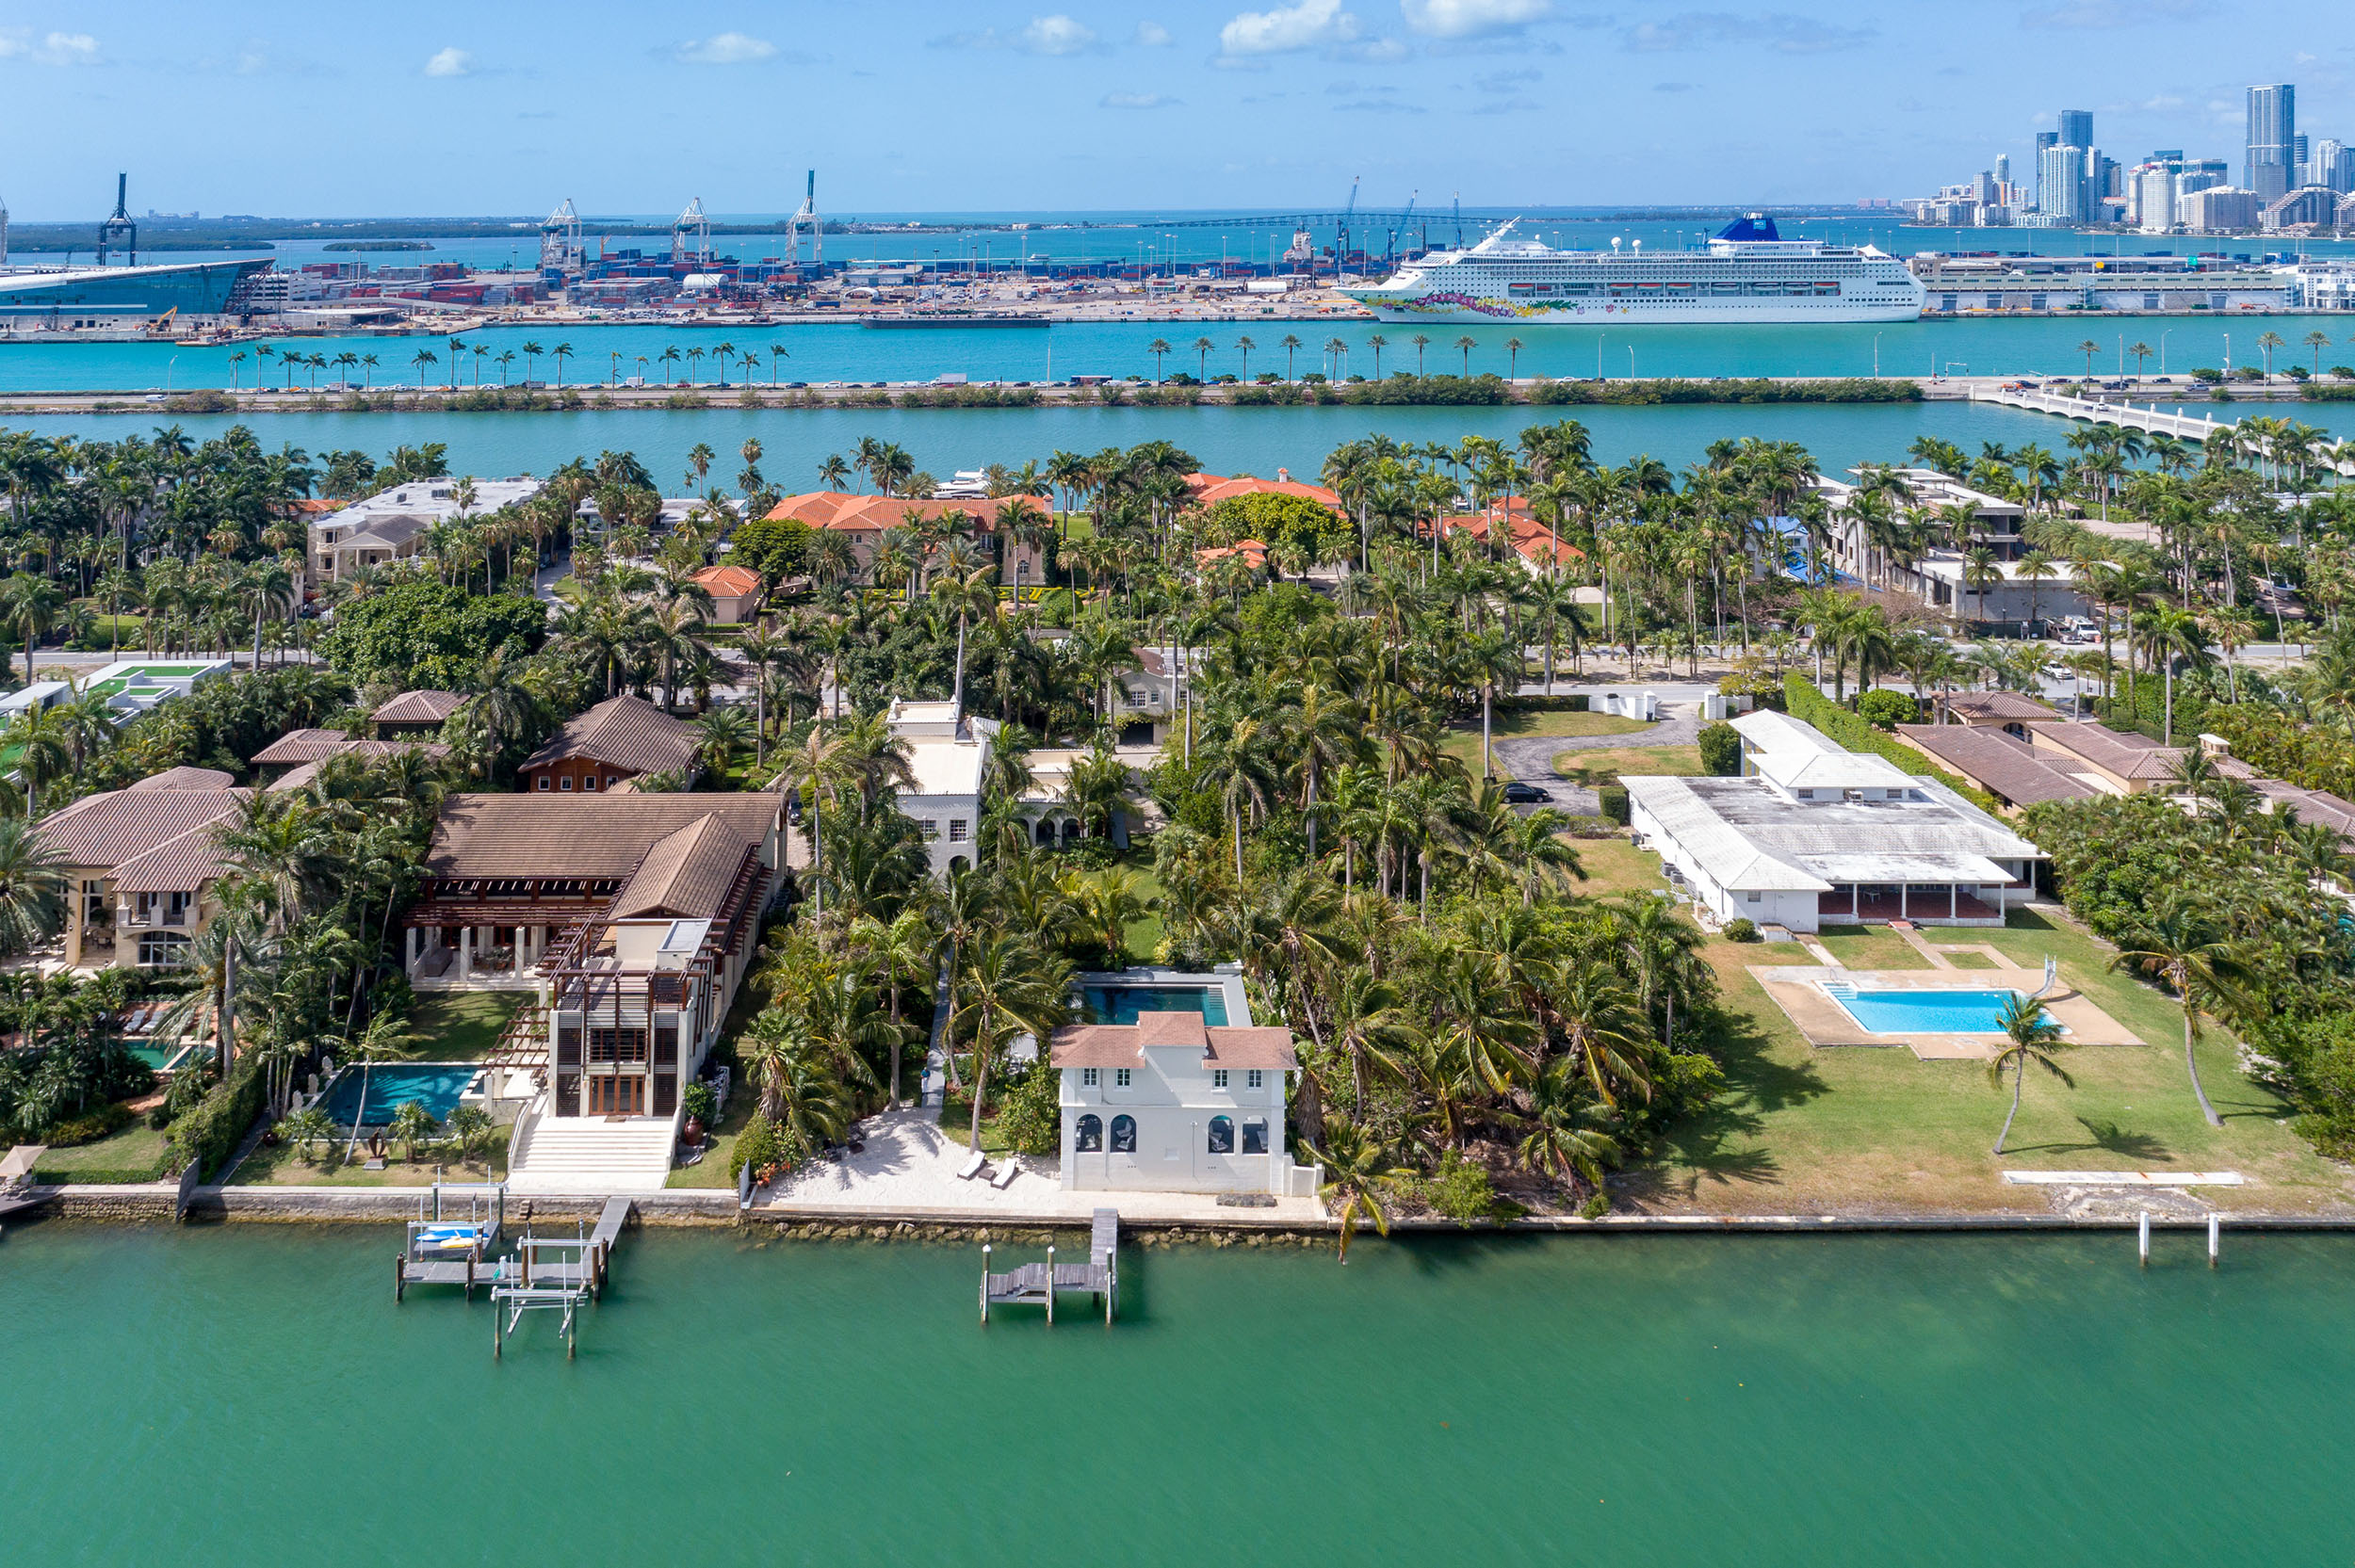 93 Palm Ave Miami Beach FL-print-035-28-20180413 01 DJI 0002-3600x2398-300dpi.jpg